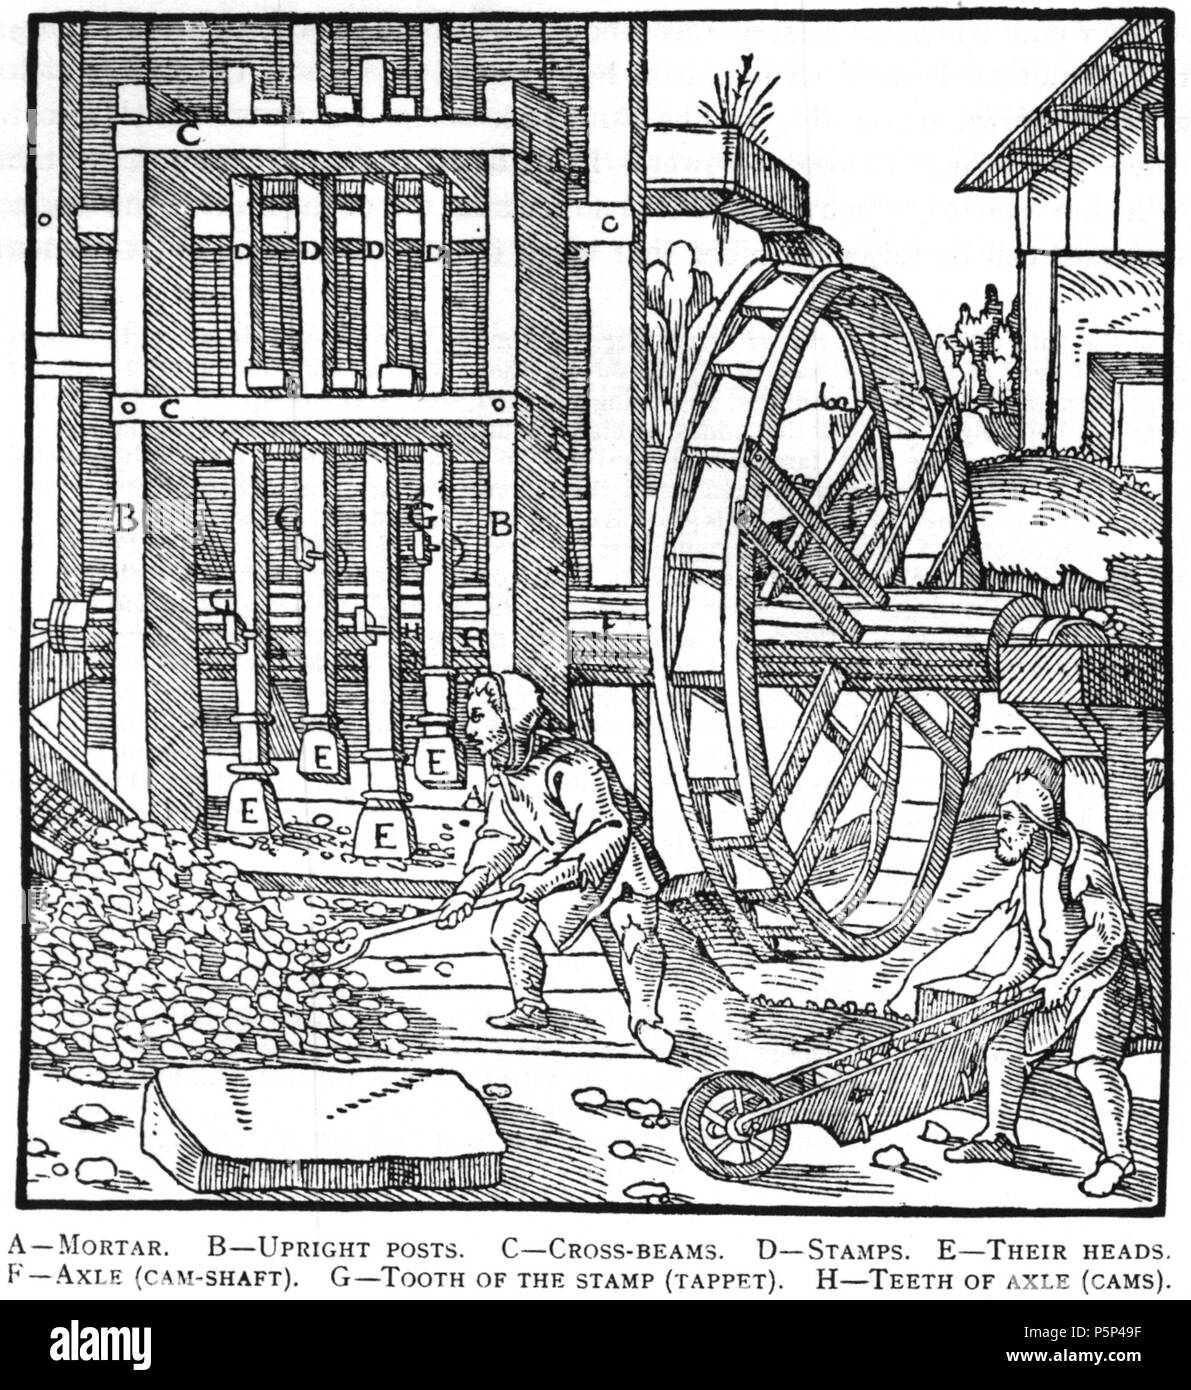 N/A. Woodcut illustration from De re metallica by Georgius Agricola. This is a 300dpi scan from the 1950 Dover edition of the 1913 Hoover translation of the 1556 reference. The Dover edition has slightly smaller size prints than the Hoover (which is a rare book). The woodcuts were recreated for the 1913 printing. Filenames (except for the title page) indicate the chapter (2, 3, 5, etc.) followed by the sequential number of the illustration. 2 May 2005, 07:12:52. TCO (talk) 223 Book8-11 - Stock Image